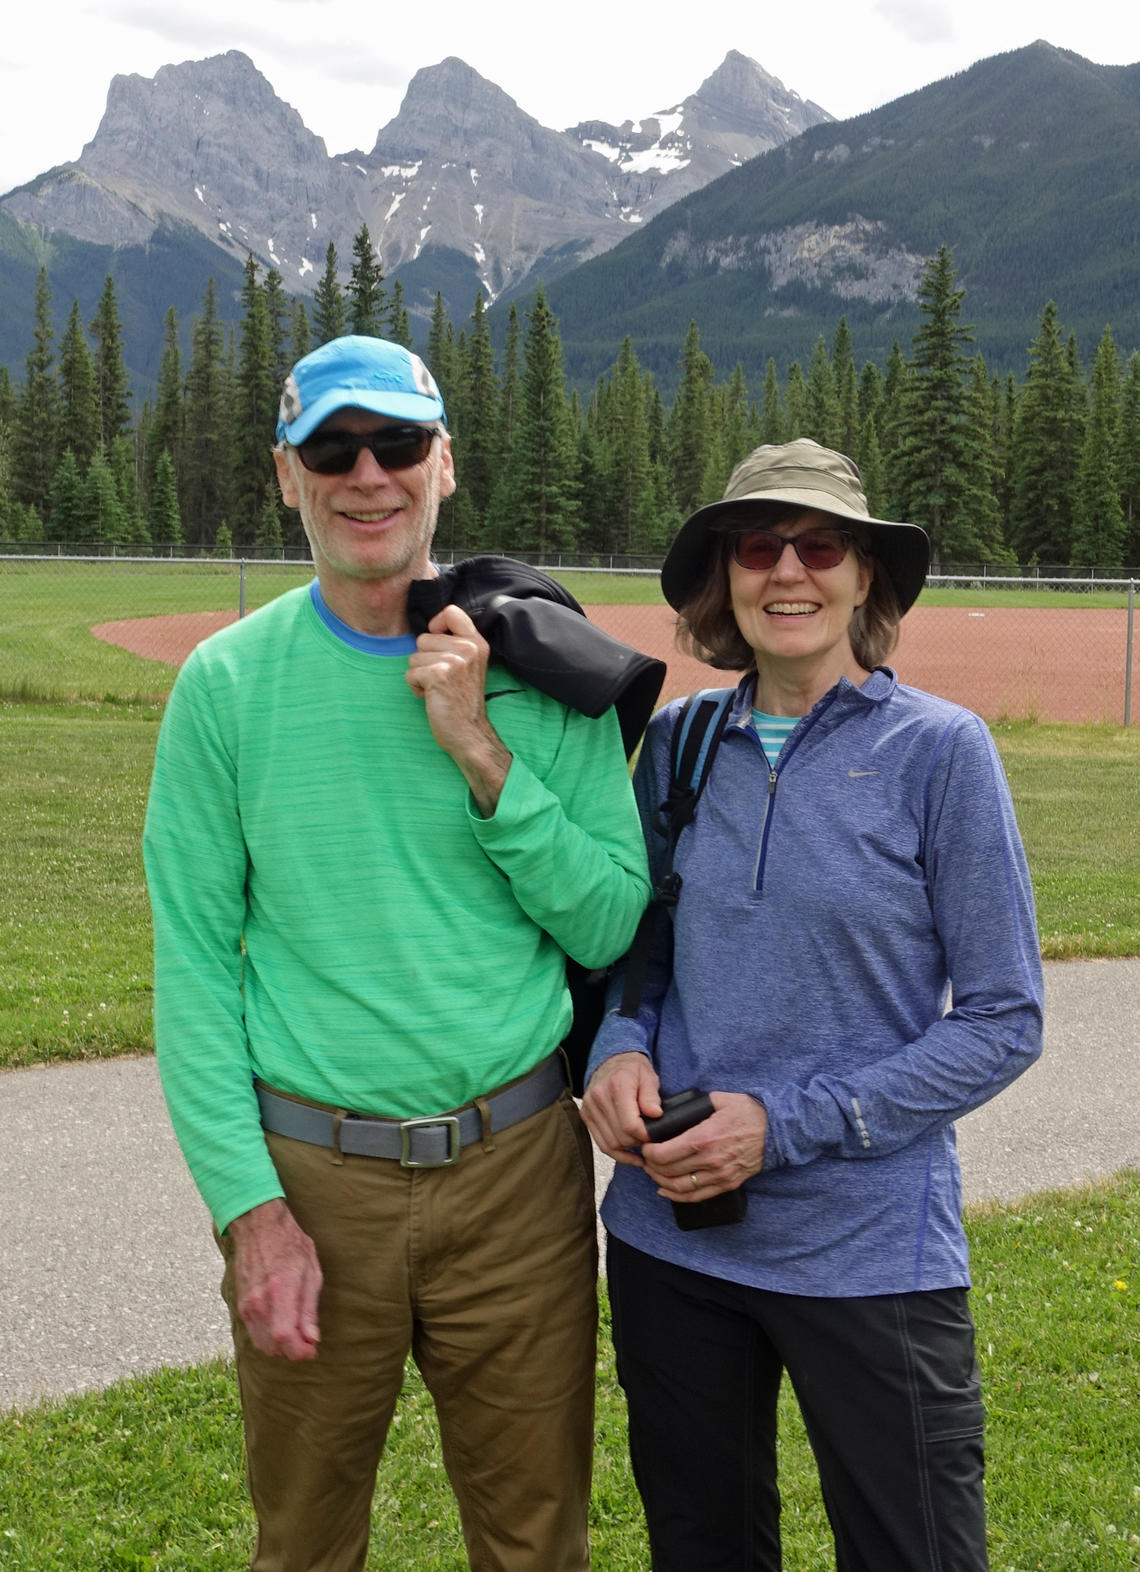 Paul and Sheena Bates stand outside in the mountains both wearing sunglasses